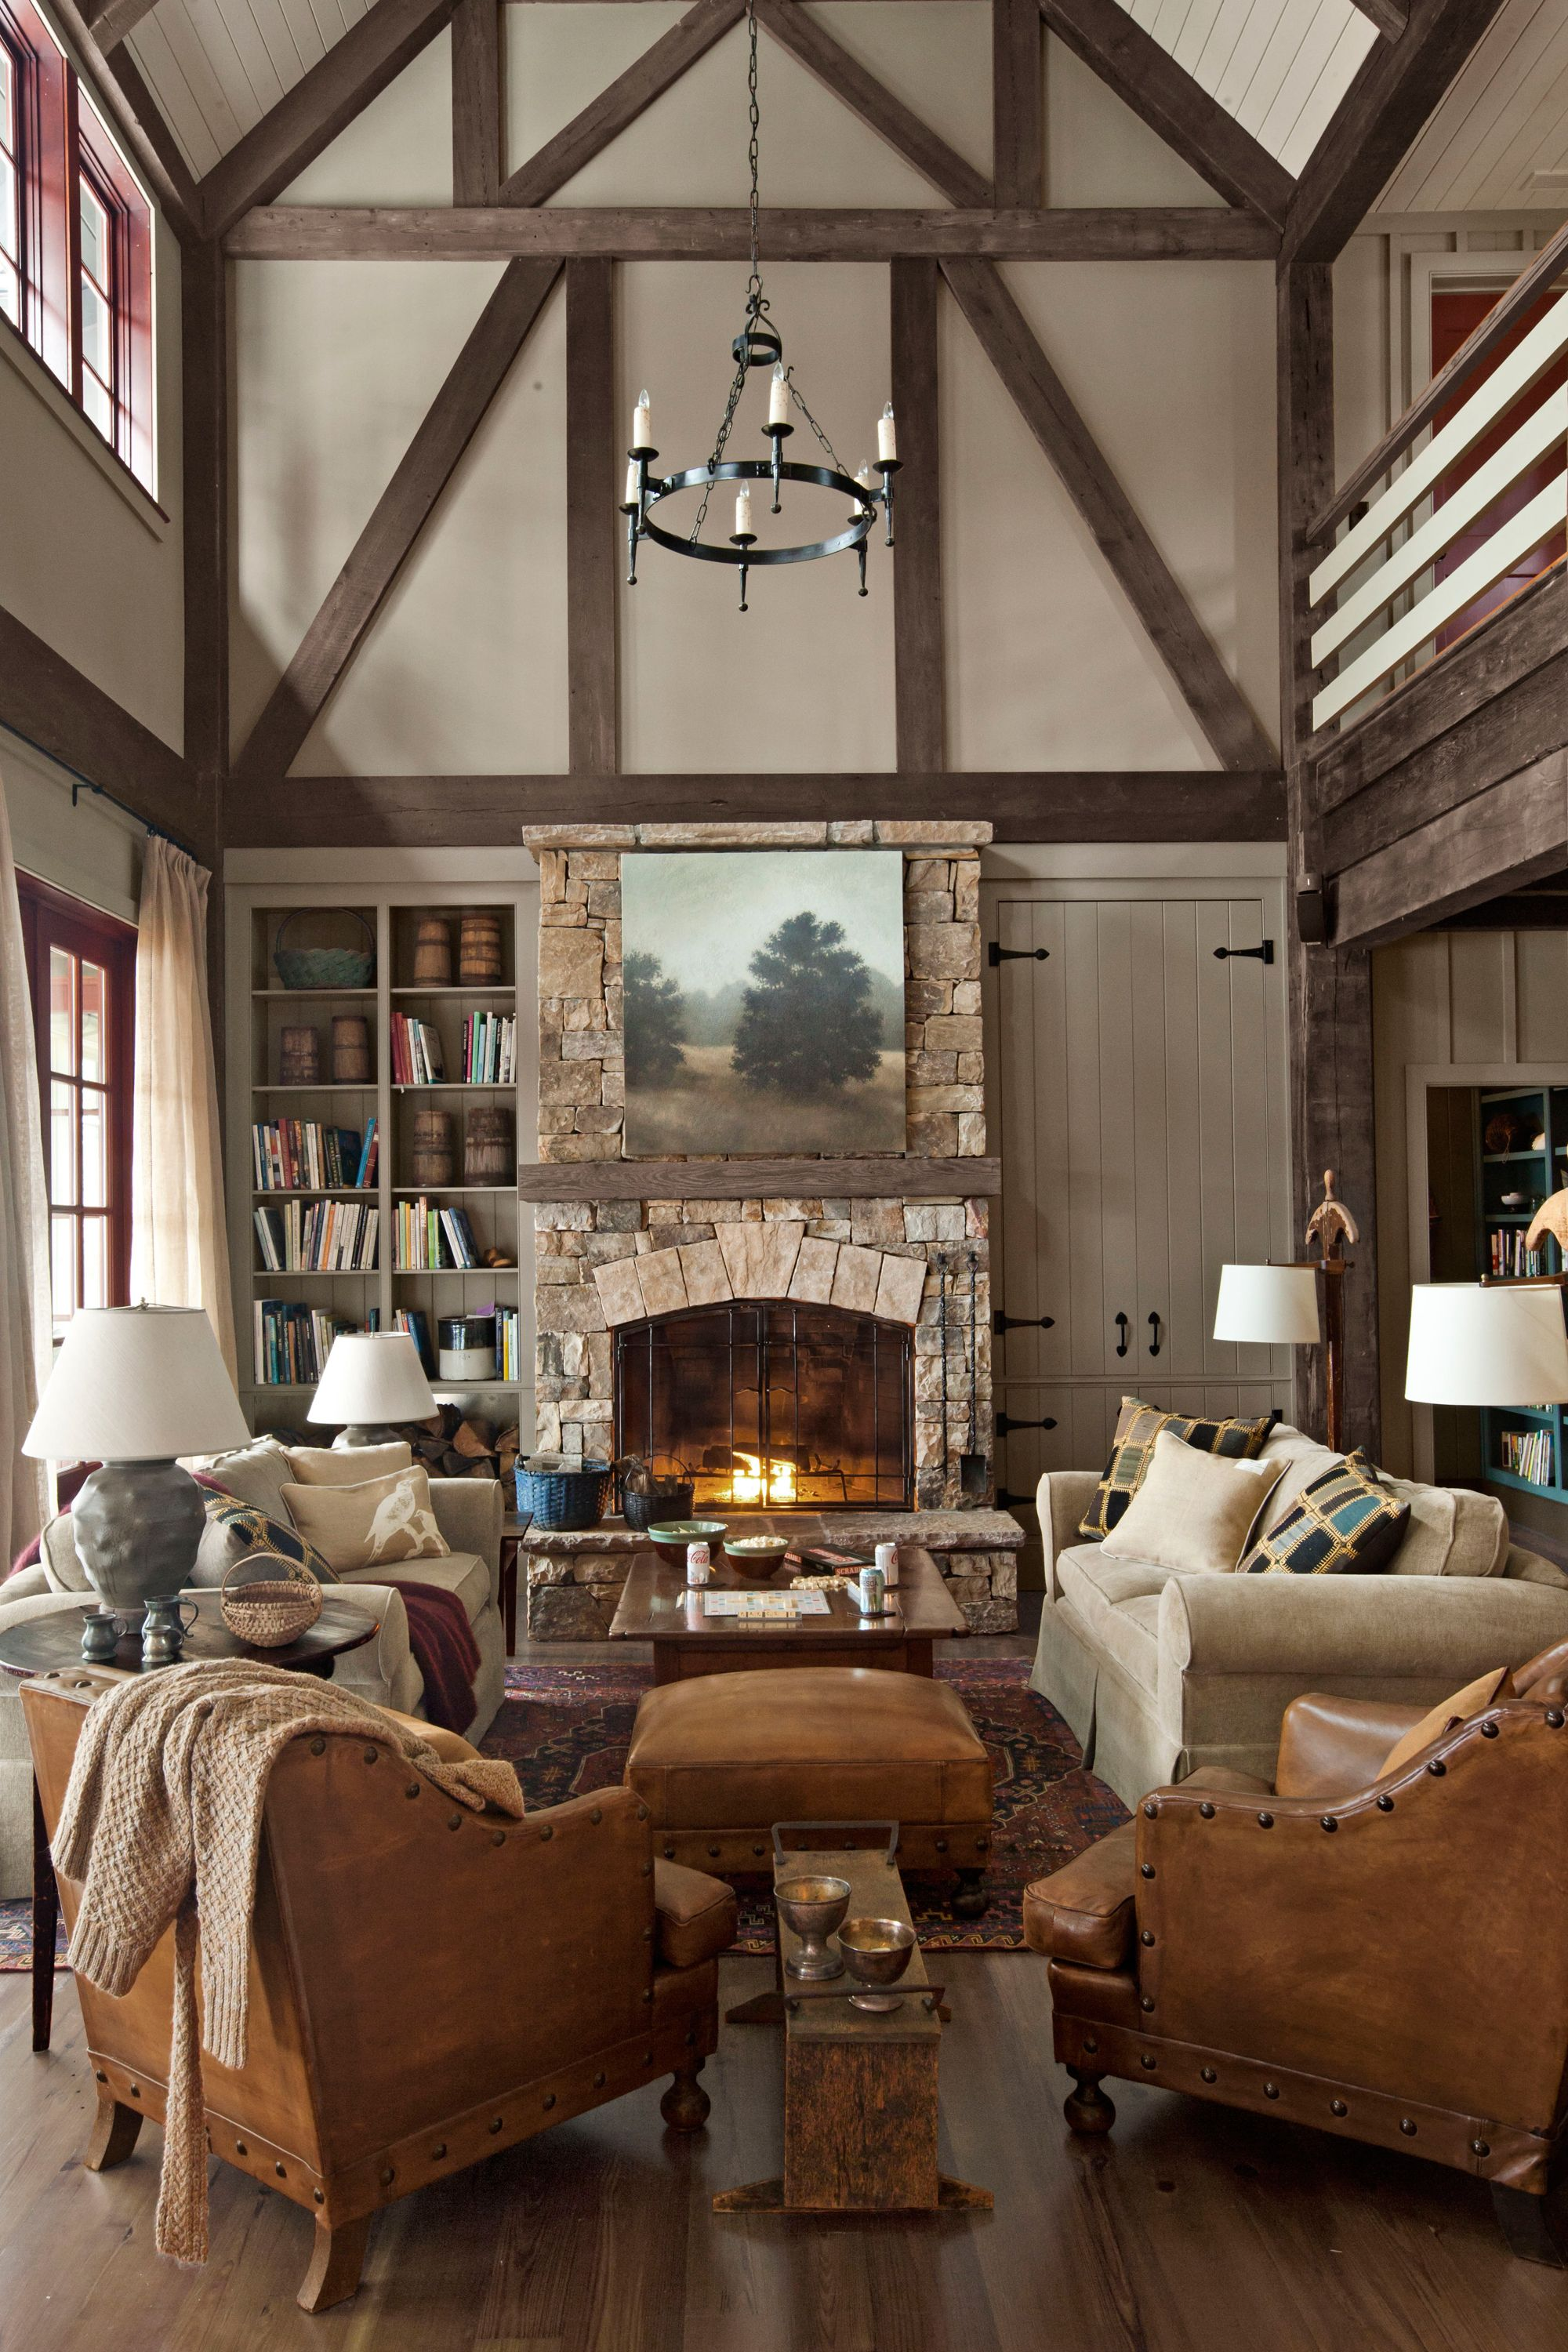 40 Cozy Living Room Decorating Ideas: Gouuooouii.virtuallyreal.store